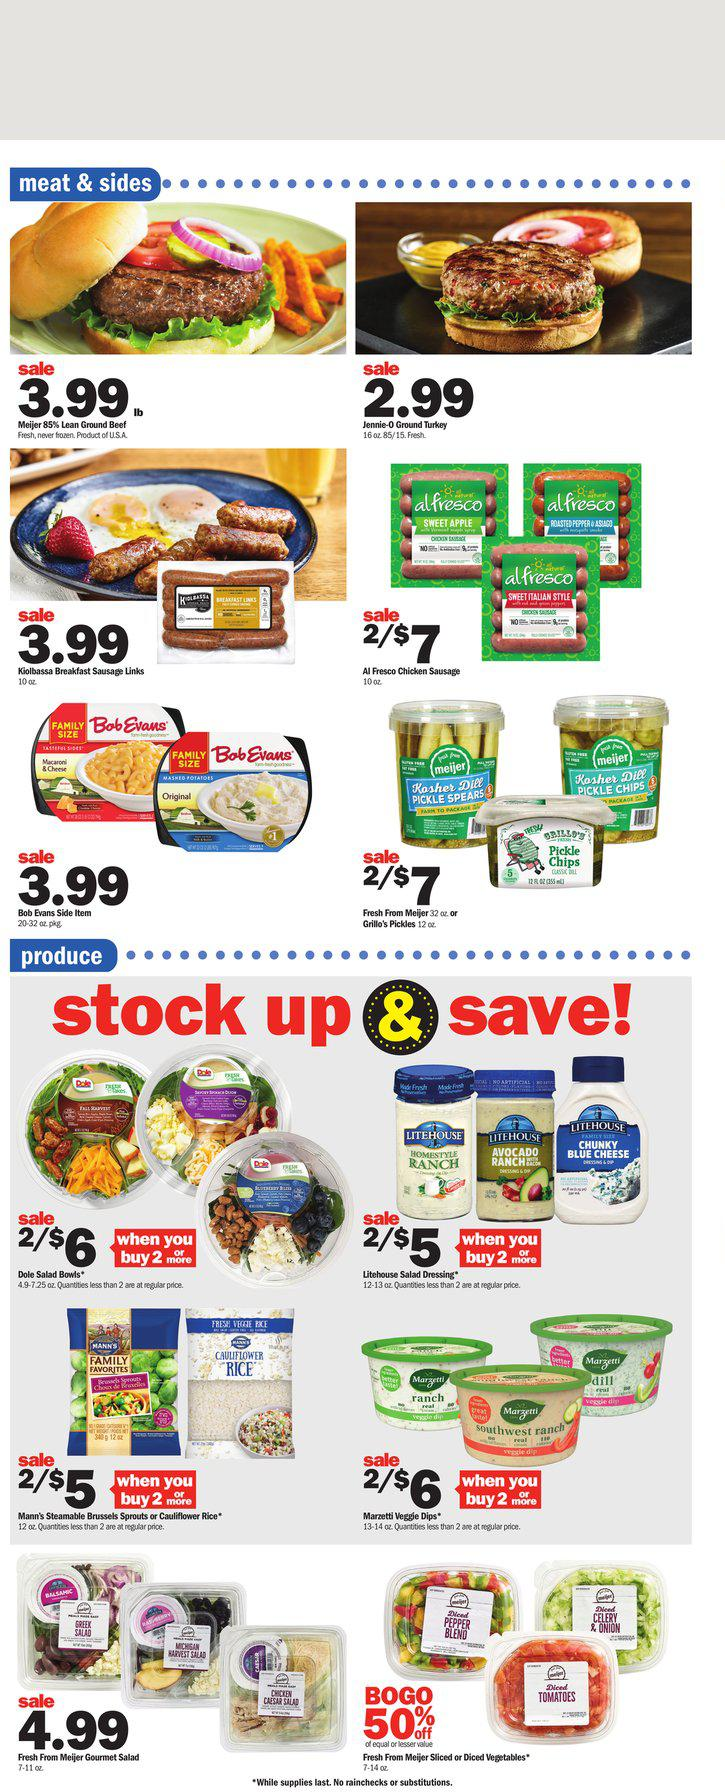 21.02.2021 Meijer ad 4. page